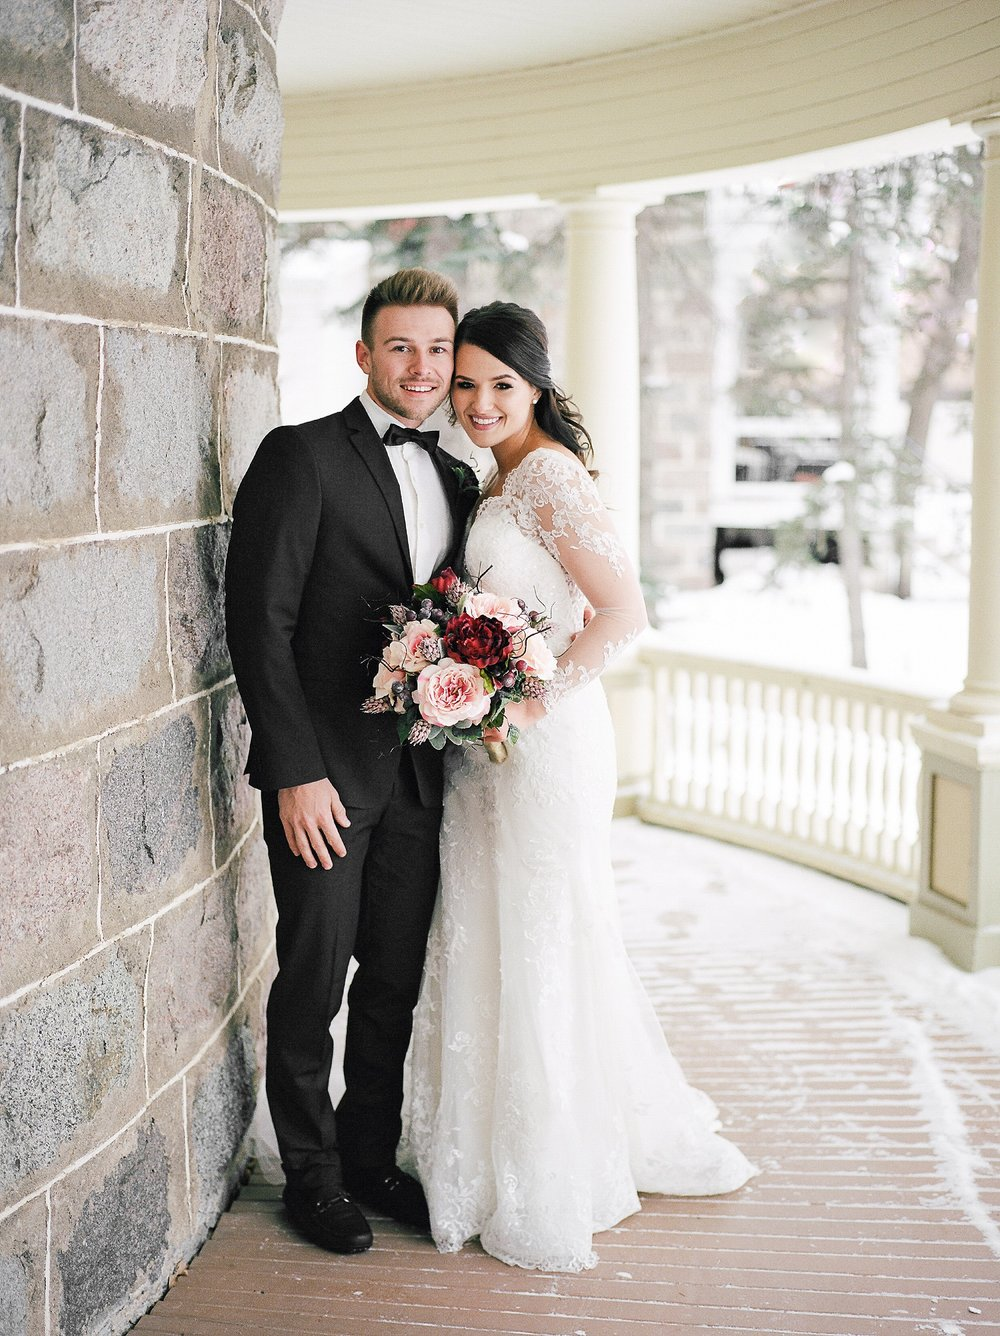 Classic Timeless Winter Wedding, Winter Wedding photo ideas, Winter wedding poses, Canadian Film Photographer, Classic Film Wedding Photography, Winnipeg Wedding Photographer, Keila Marie Photography